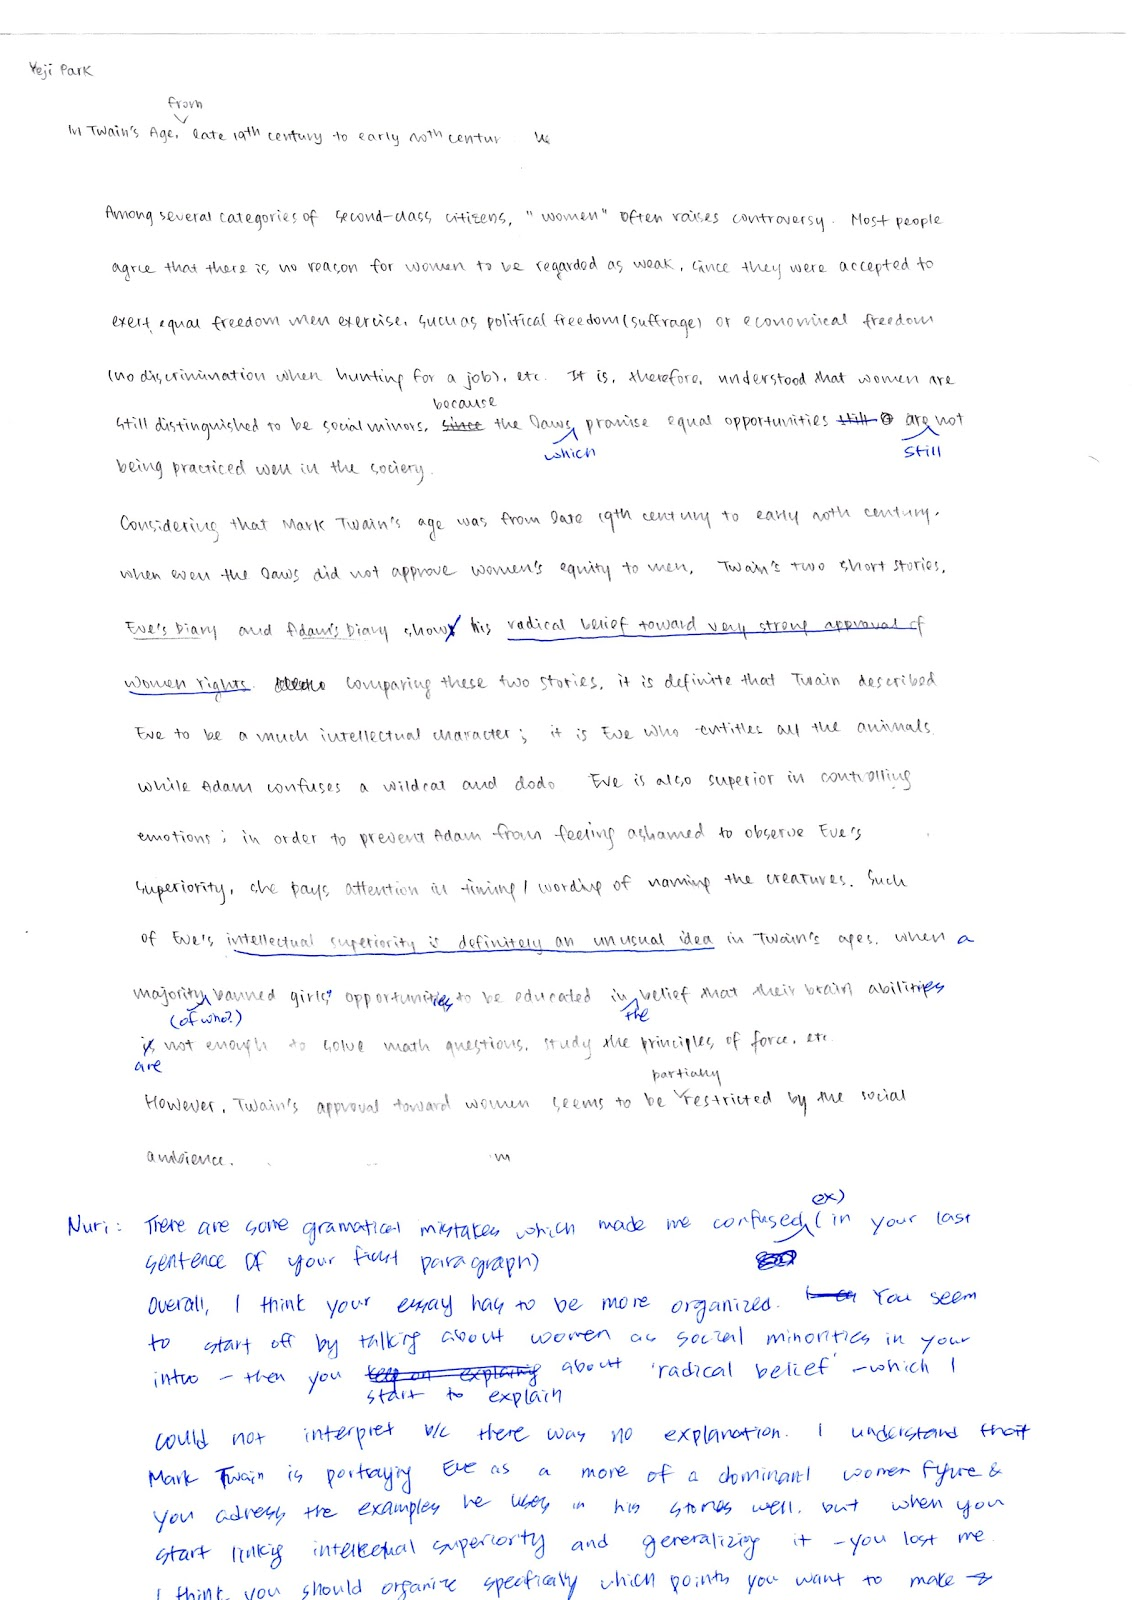 022 Essay Of Ambition Example Awesome On Lady Macbeth's Short My Life To Become A Pilot Full